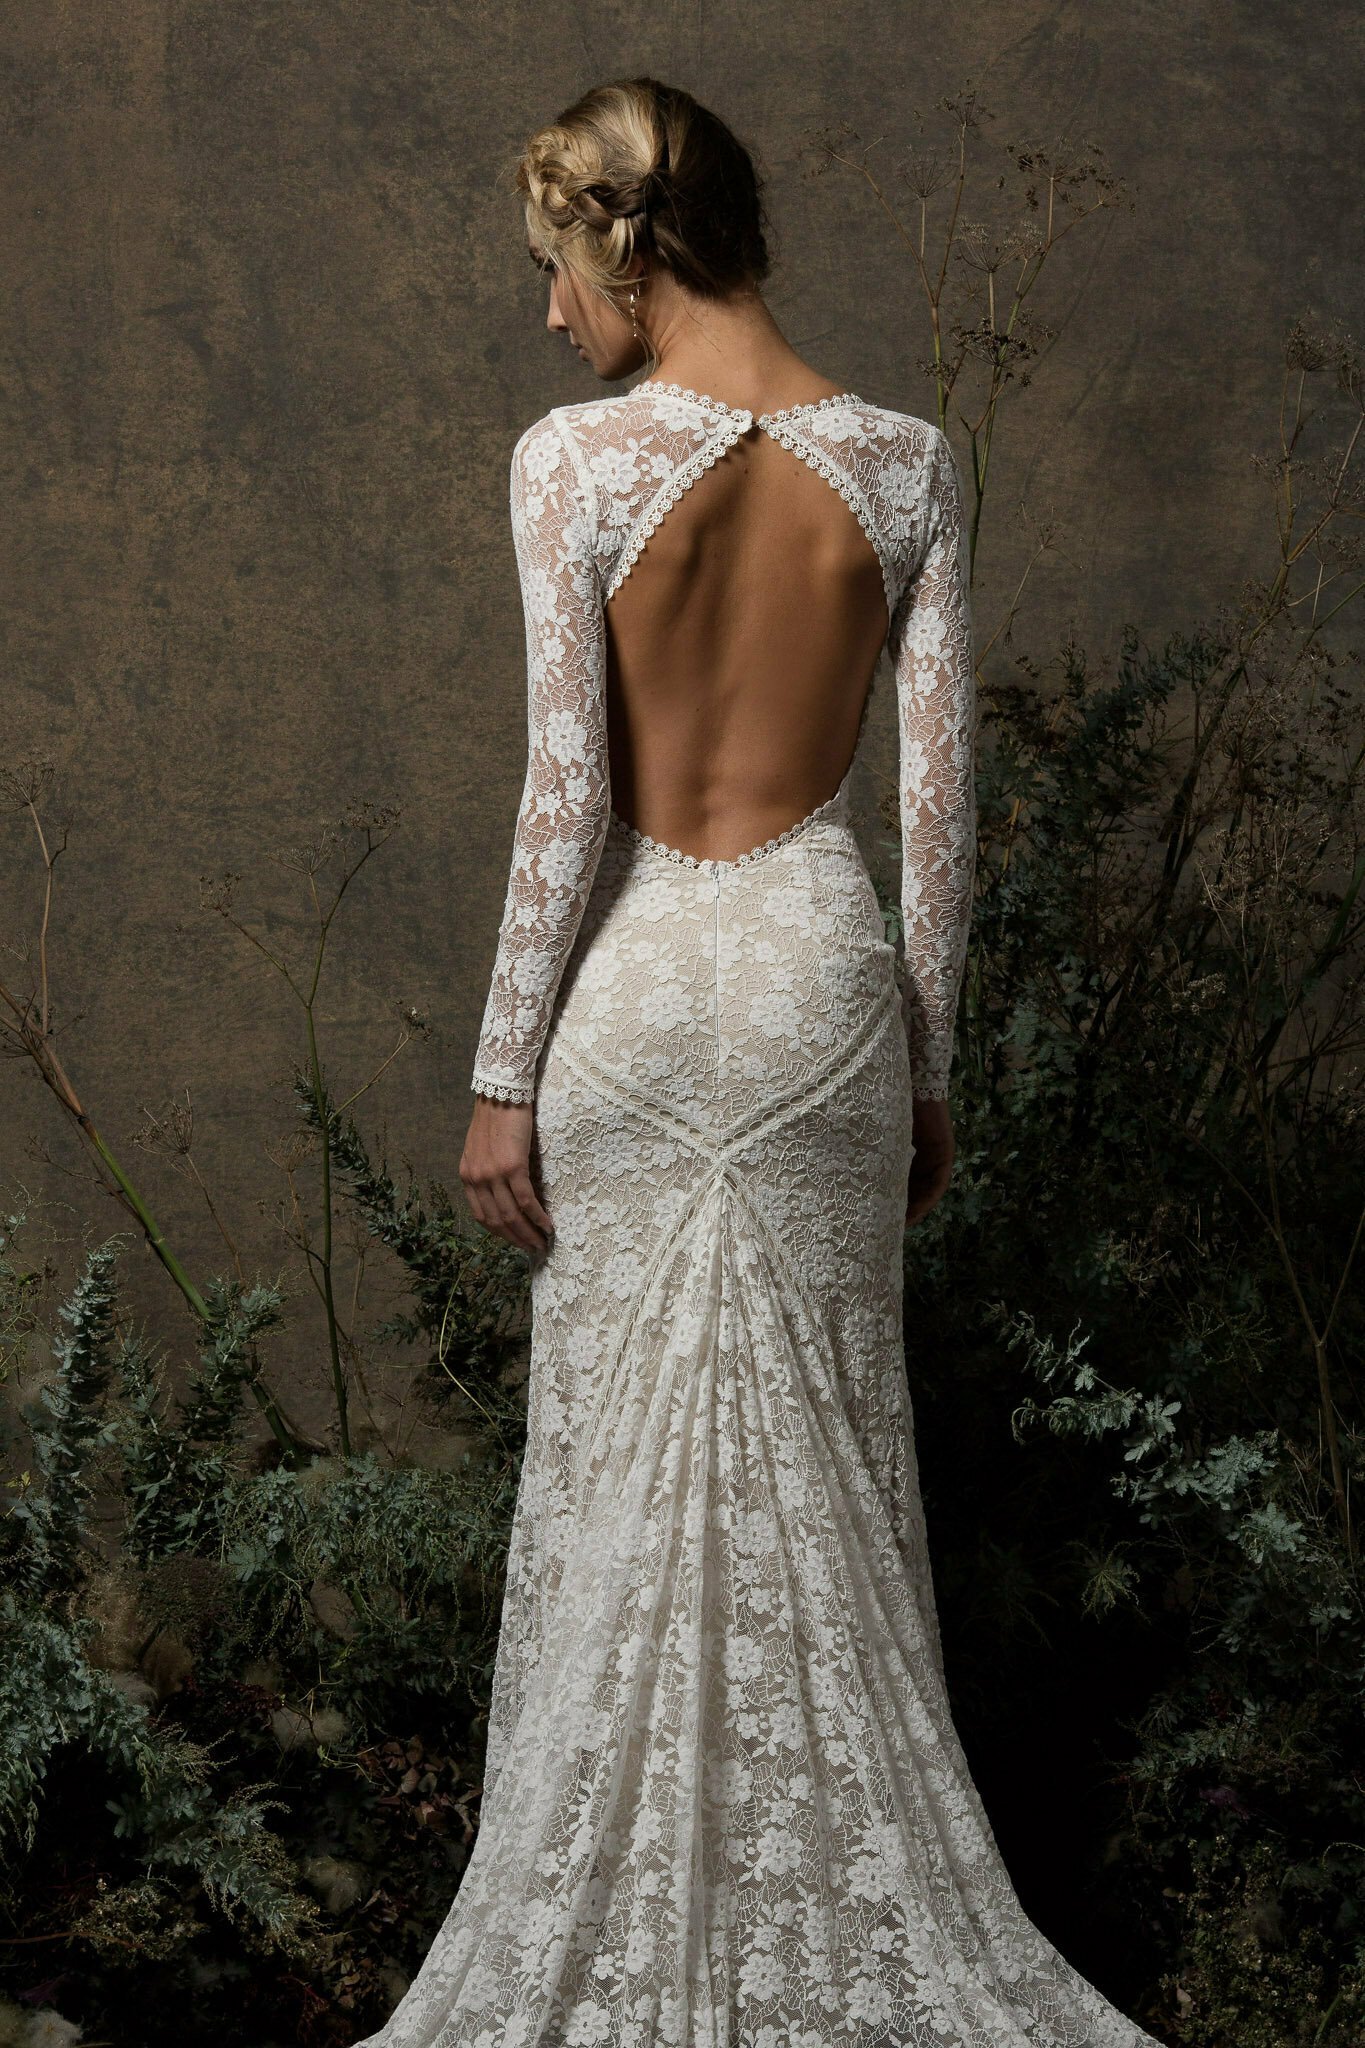 Wedding Dress With Sleeves.Valentina Backless Lace Dress